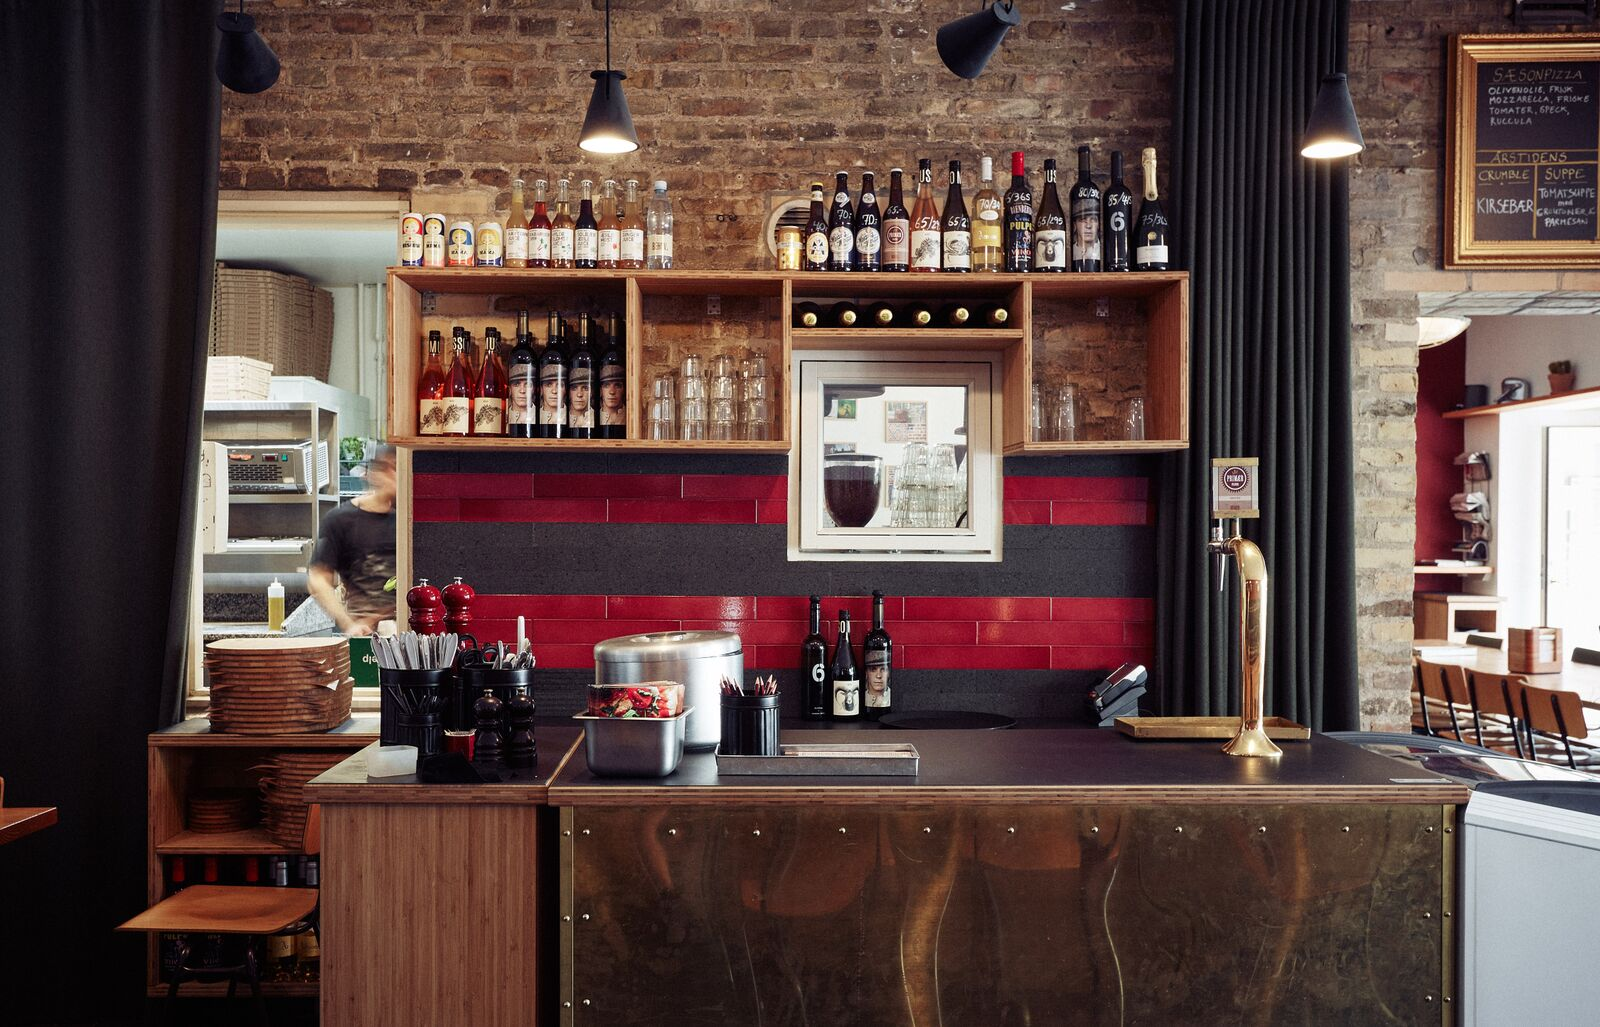 Bar Design von RackBuddy bei Behov Pizza